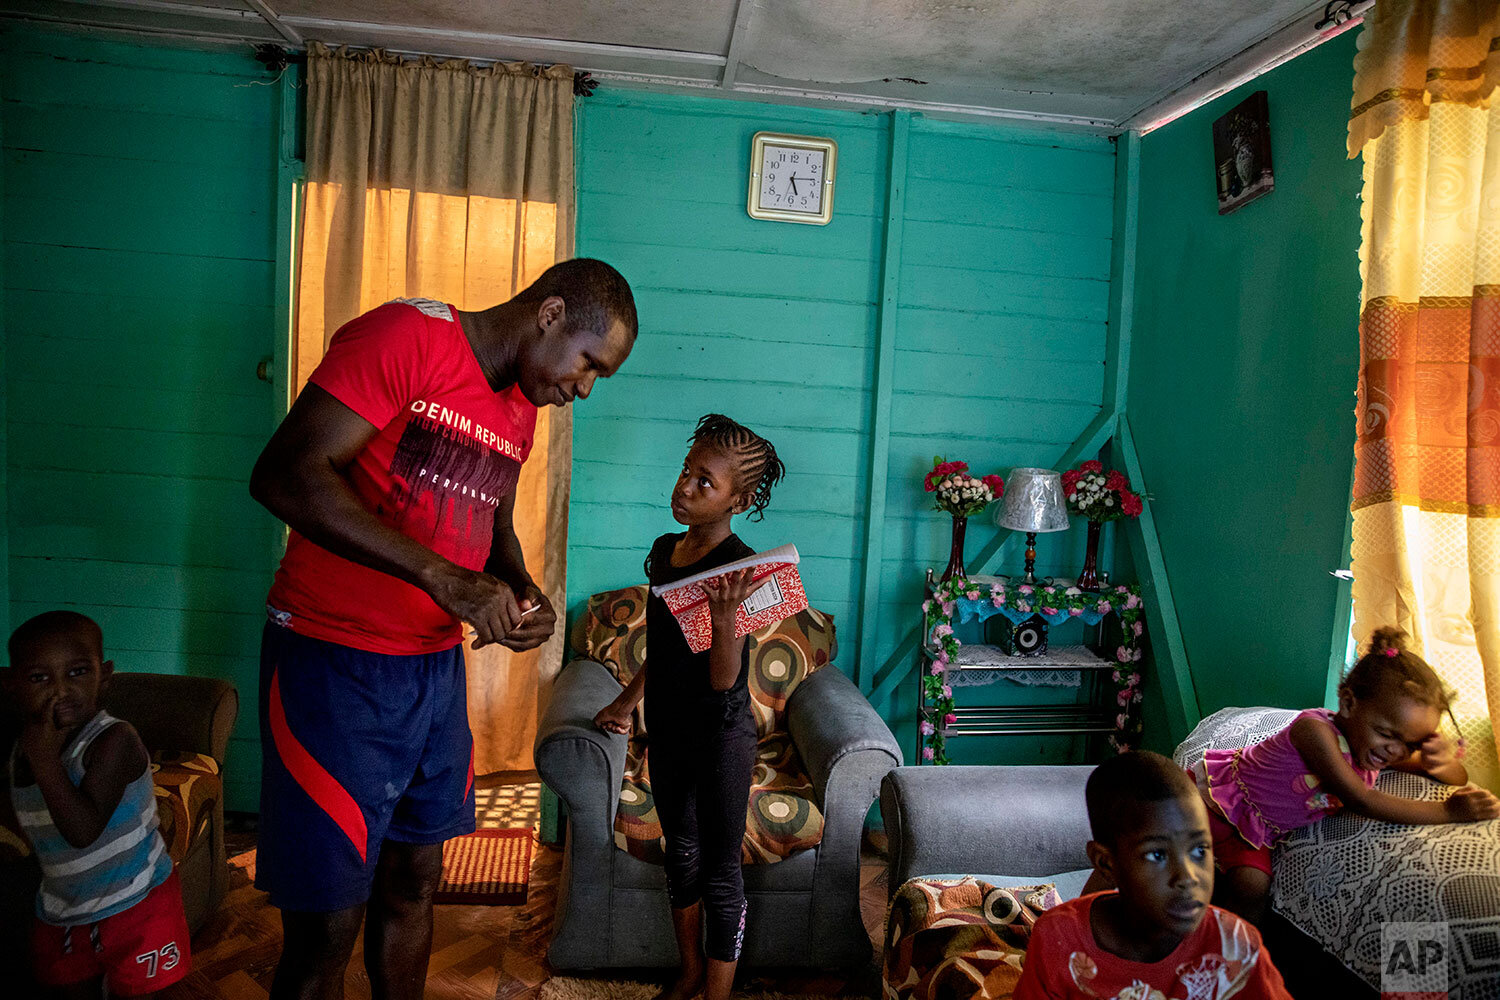 """Fisherman Damian Brown helps his daughter Mishaunda, 9, with her homework as his sons Damian Jr., 3, from left, Dre, 4, and daughter Paris, 1, right, watch television in their home in Stewart Town, Jamaica, Thursday, Feb. 14, 2019. Brown has been caught twice fishing inside a no-take zone and now relies more on night spearfishing, which is illegal, to make up for the wages impacted by the sanctuary's restrictions. """"Was nice before the sanctuary come in. Was good,"""" said Brown. """"Now I make no money off the sea again like one time."""" (AP Photo/David Goldman)"""